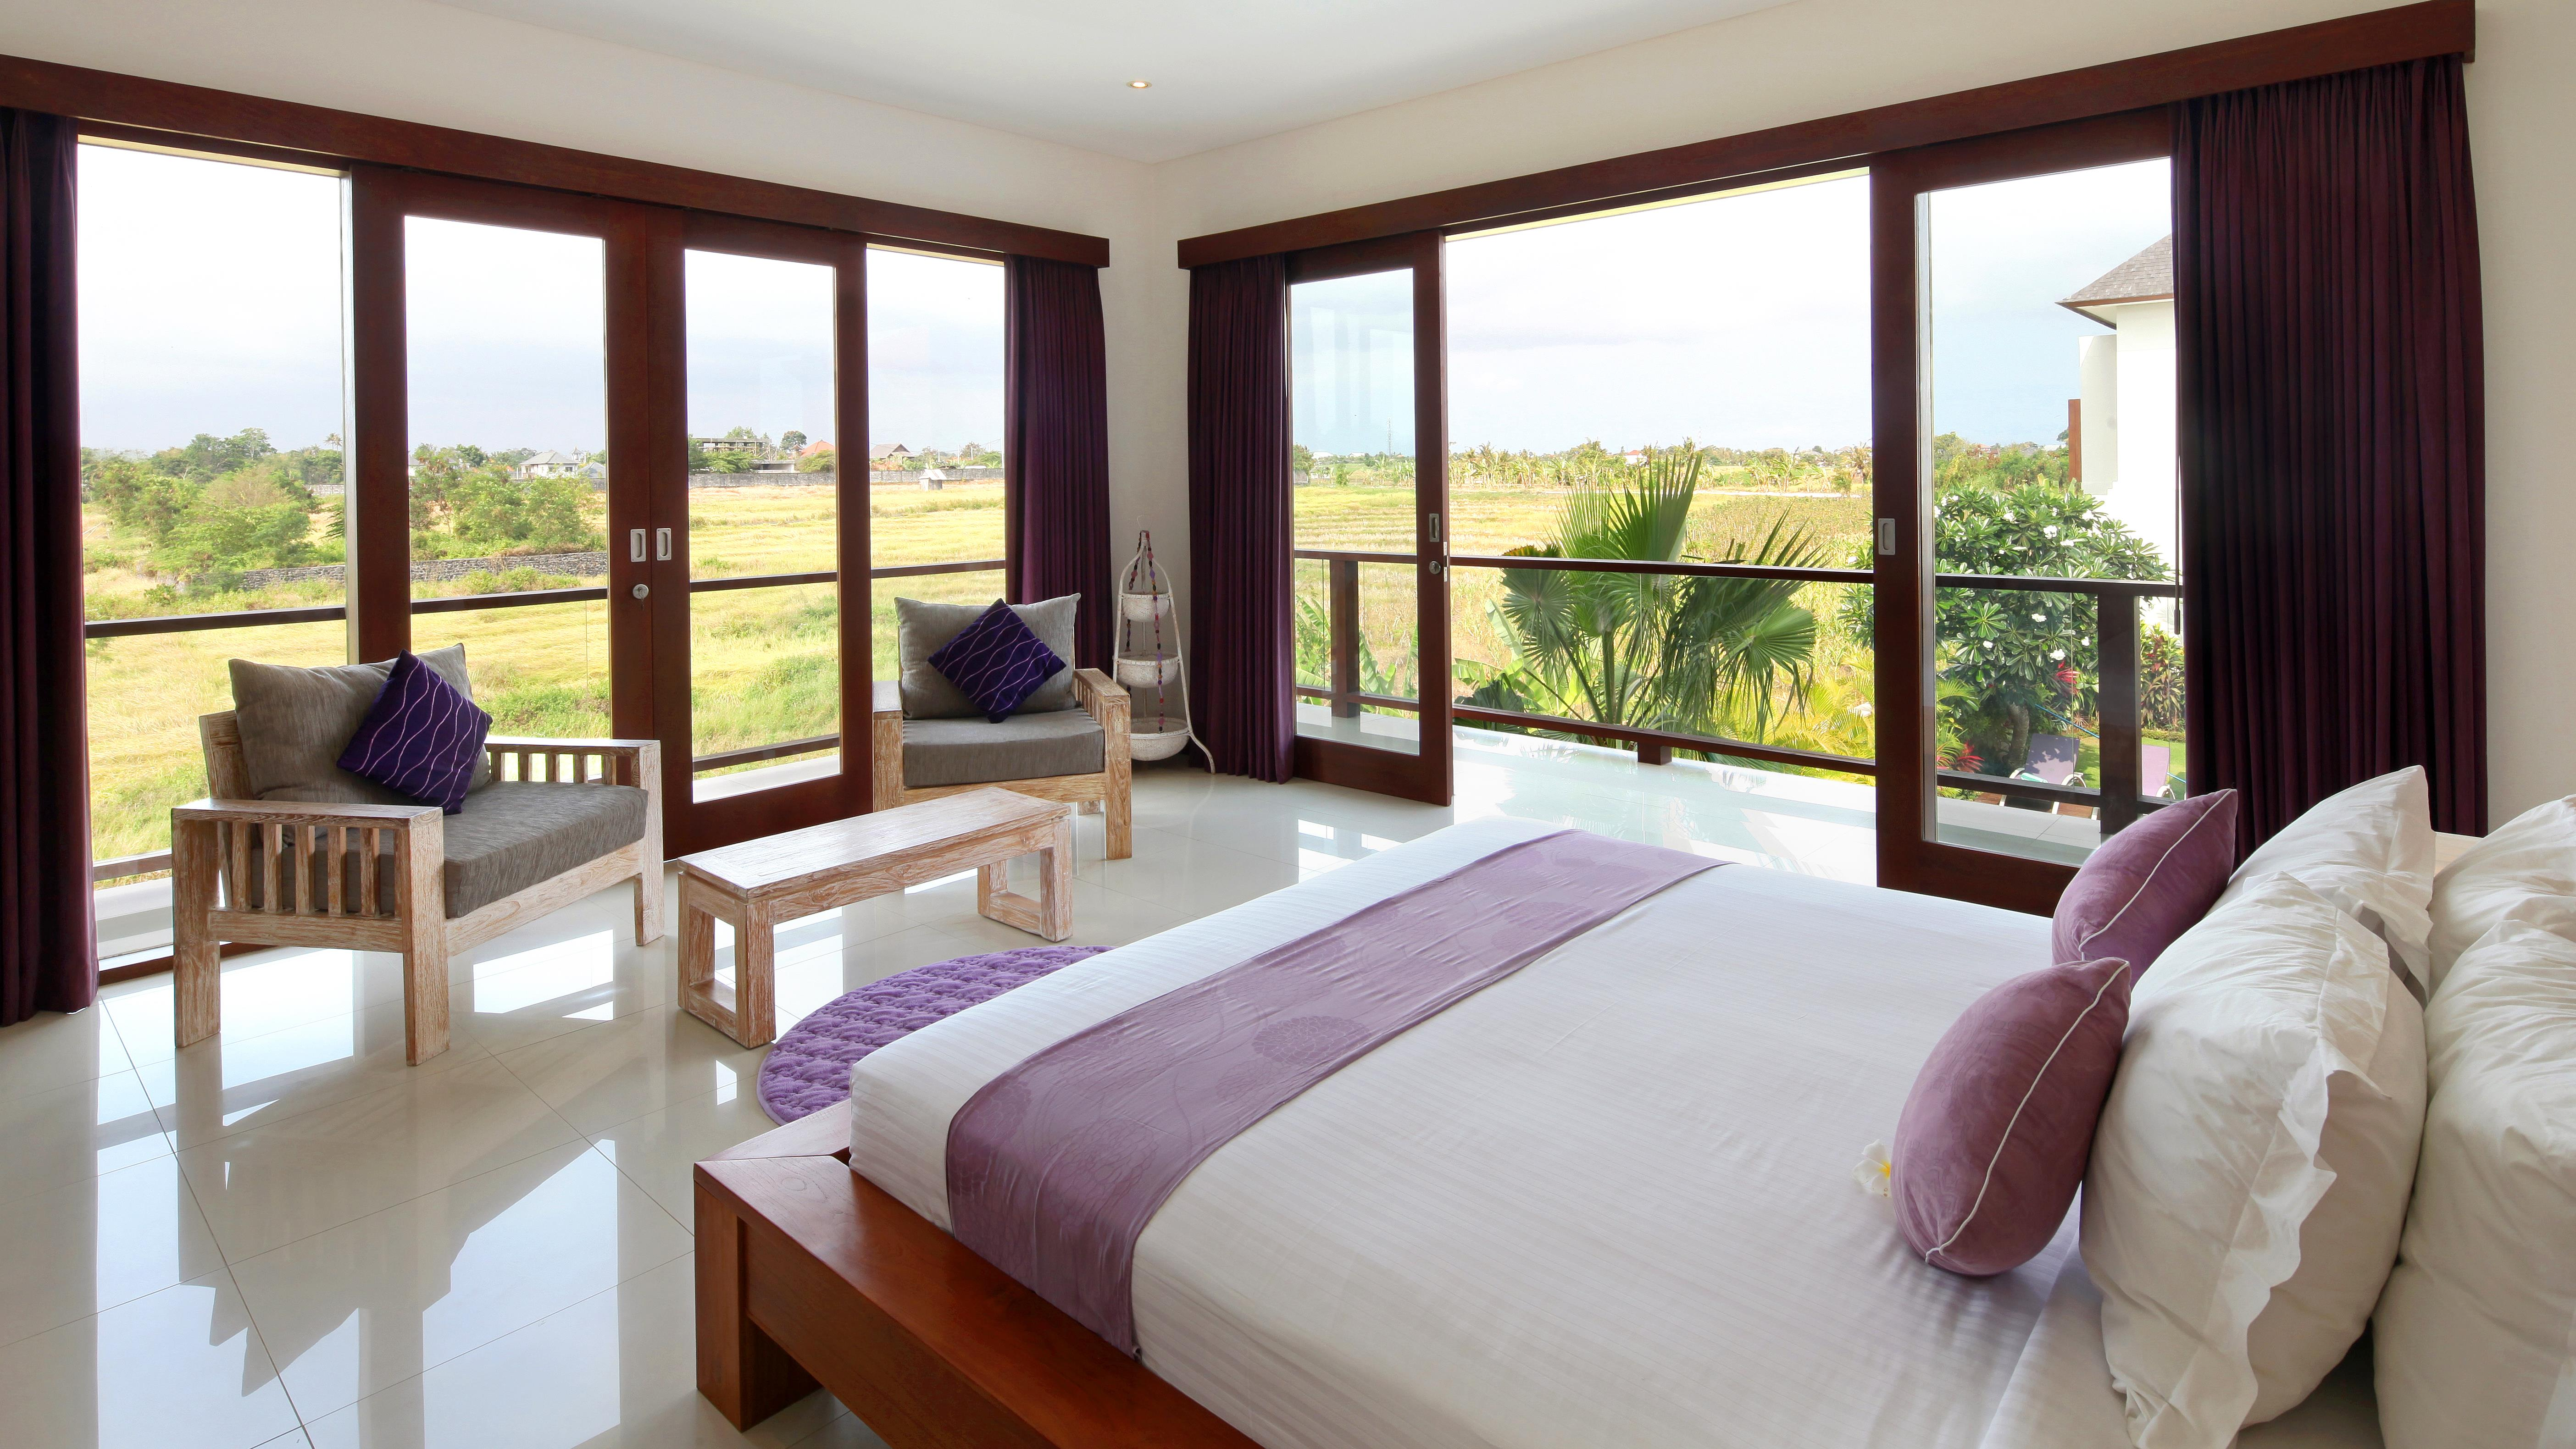 Bedroom with Seating Area - Villa Merayu - Canggu, Bali